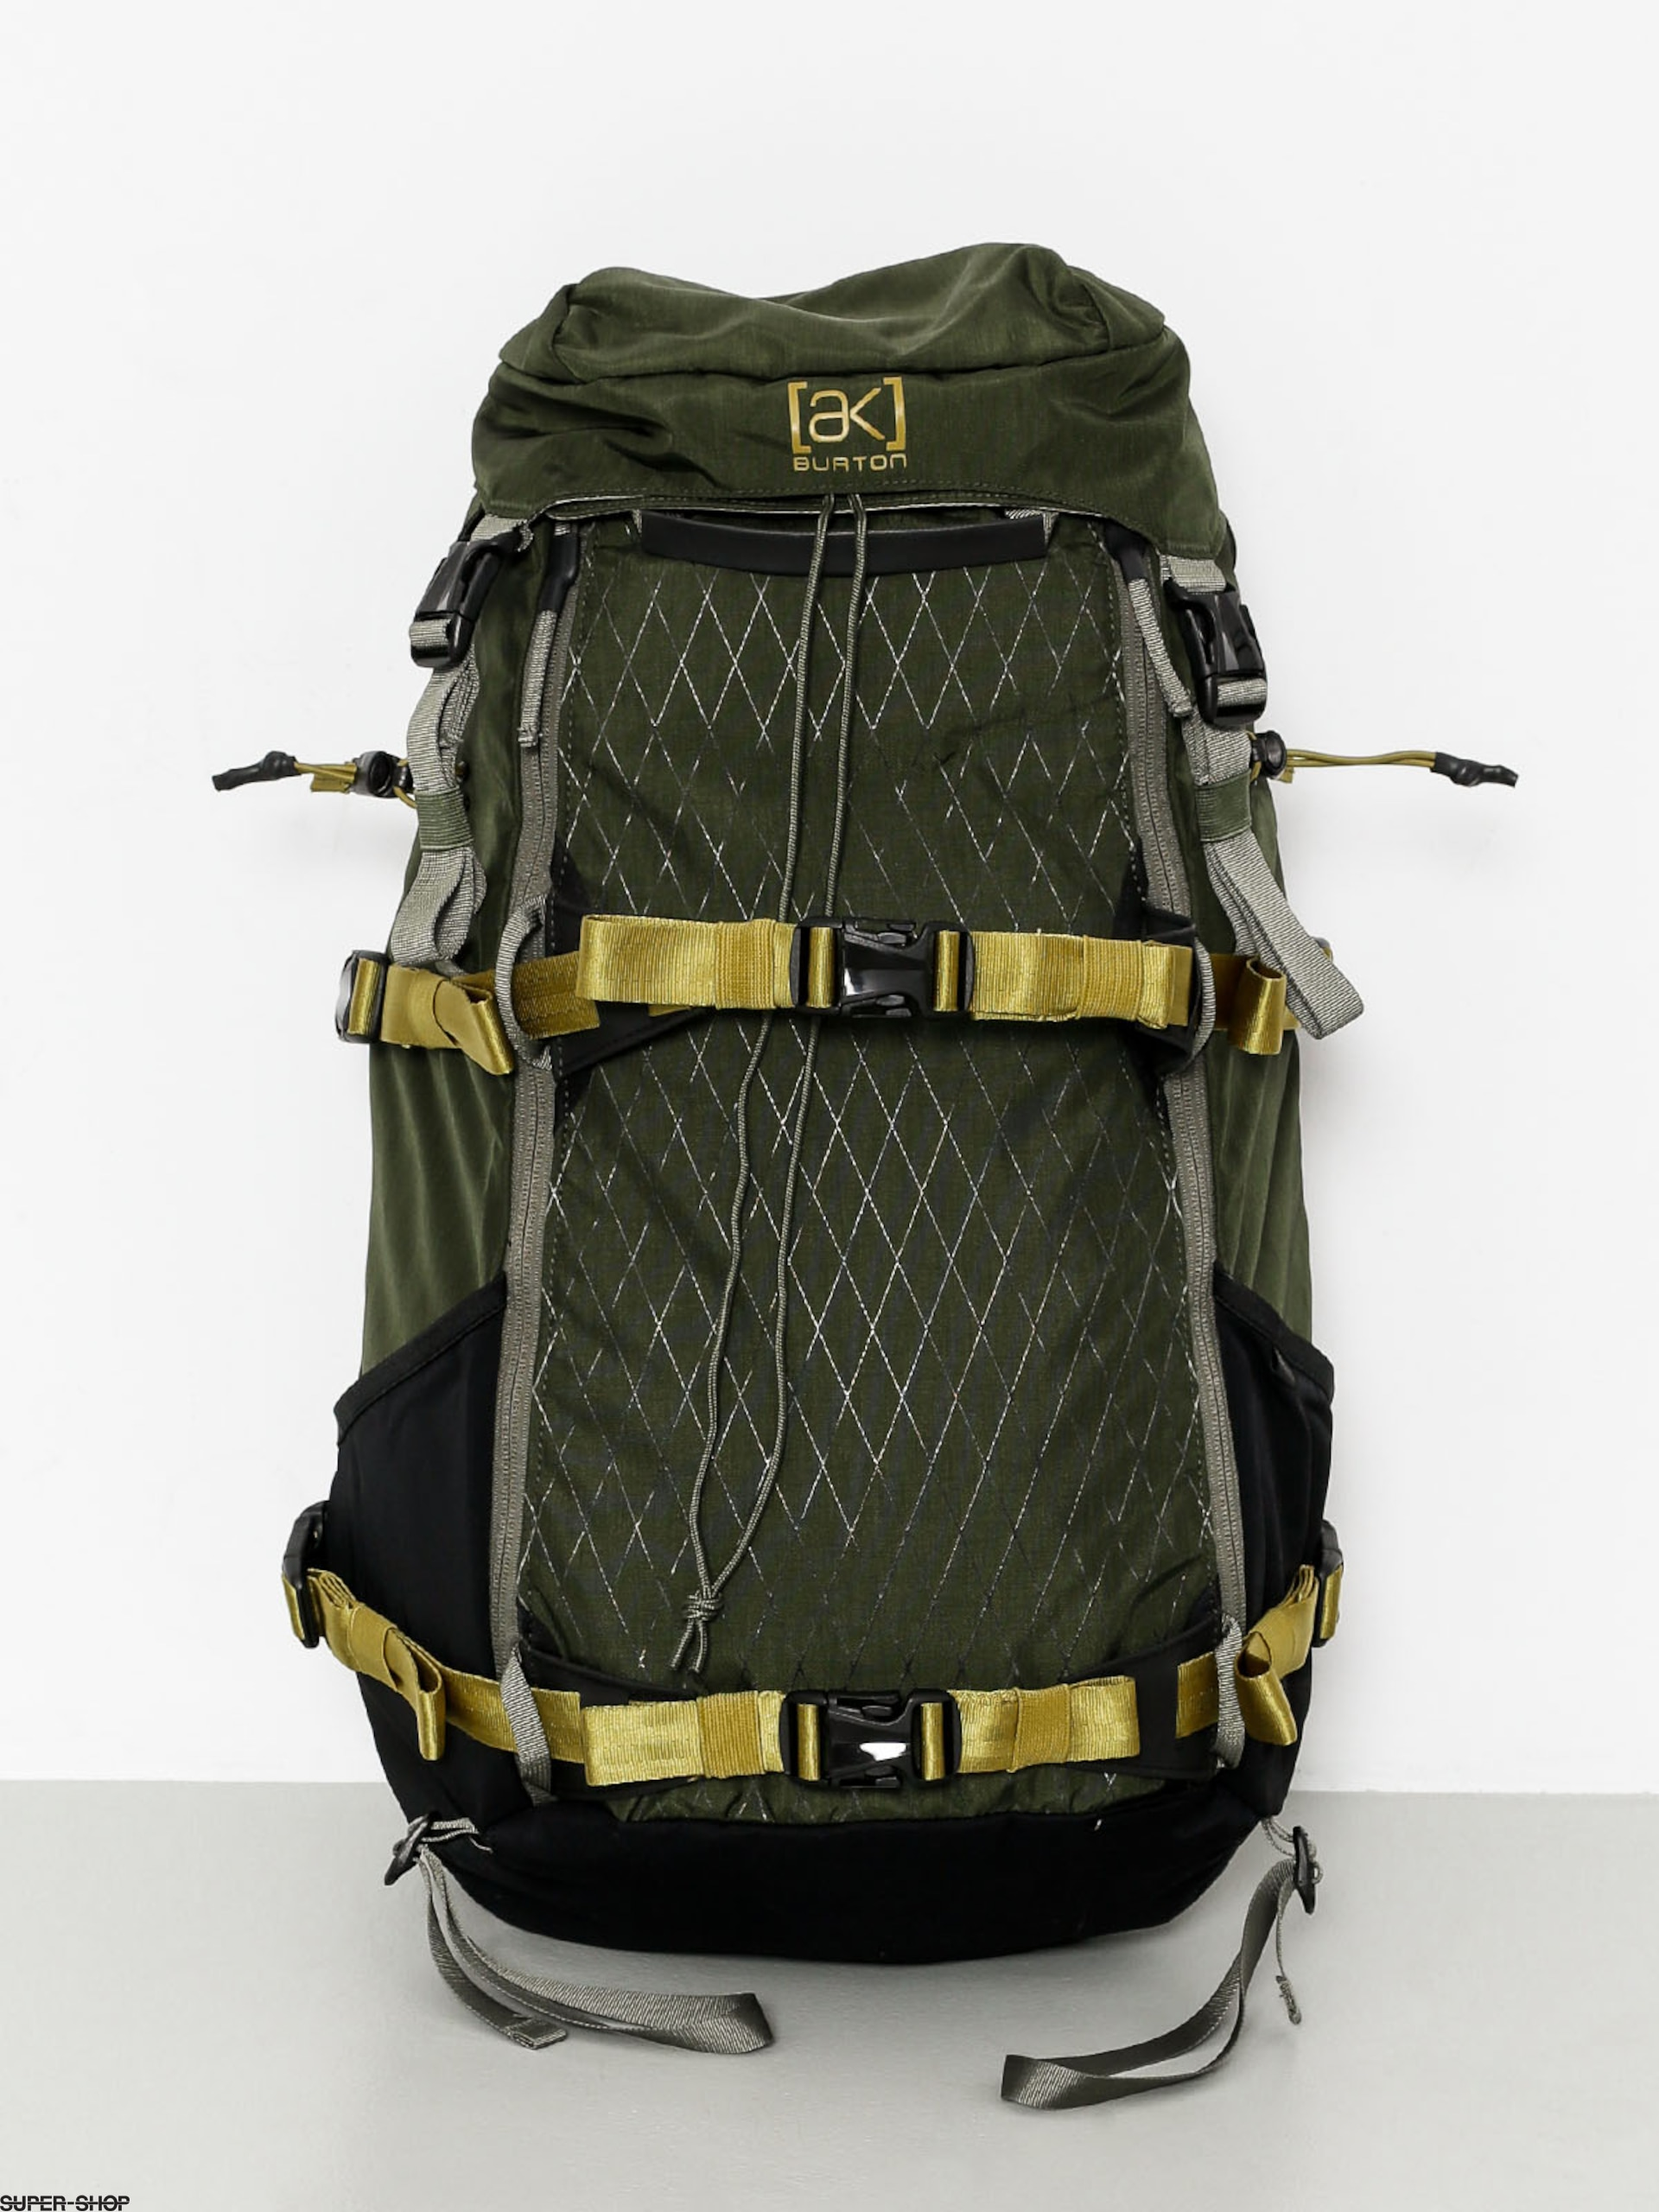 Burton Rucksack Ak Tour 31L (forest night cordura)